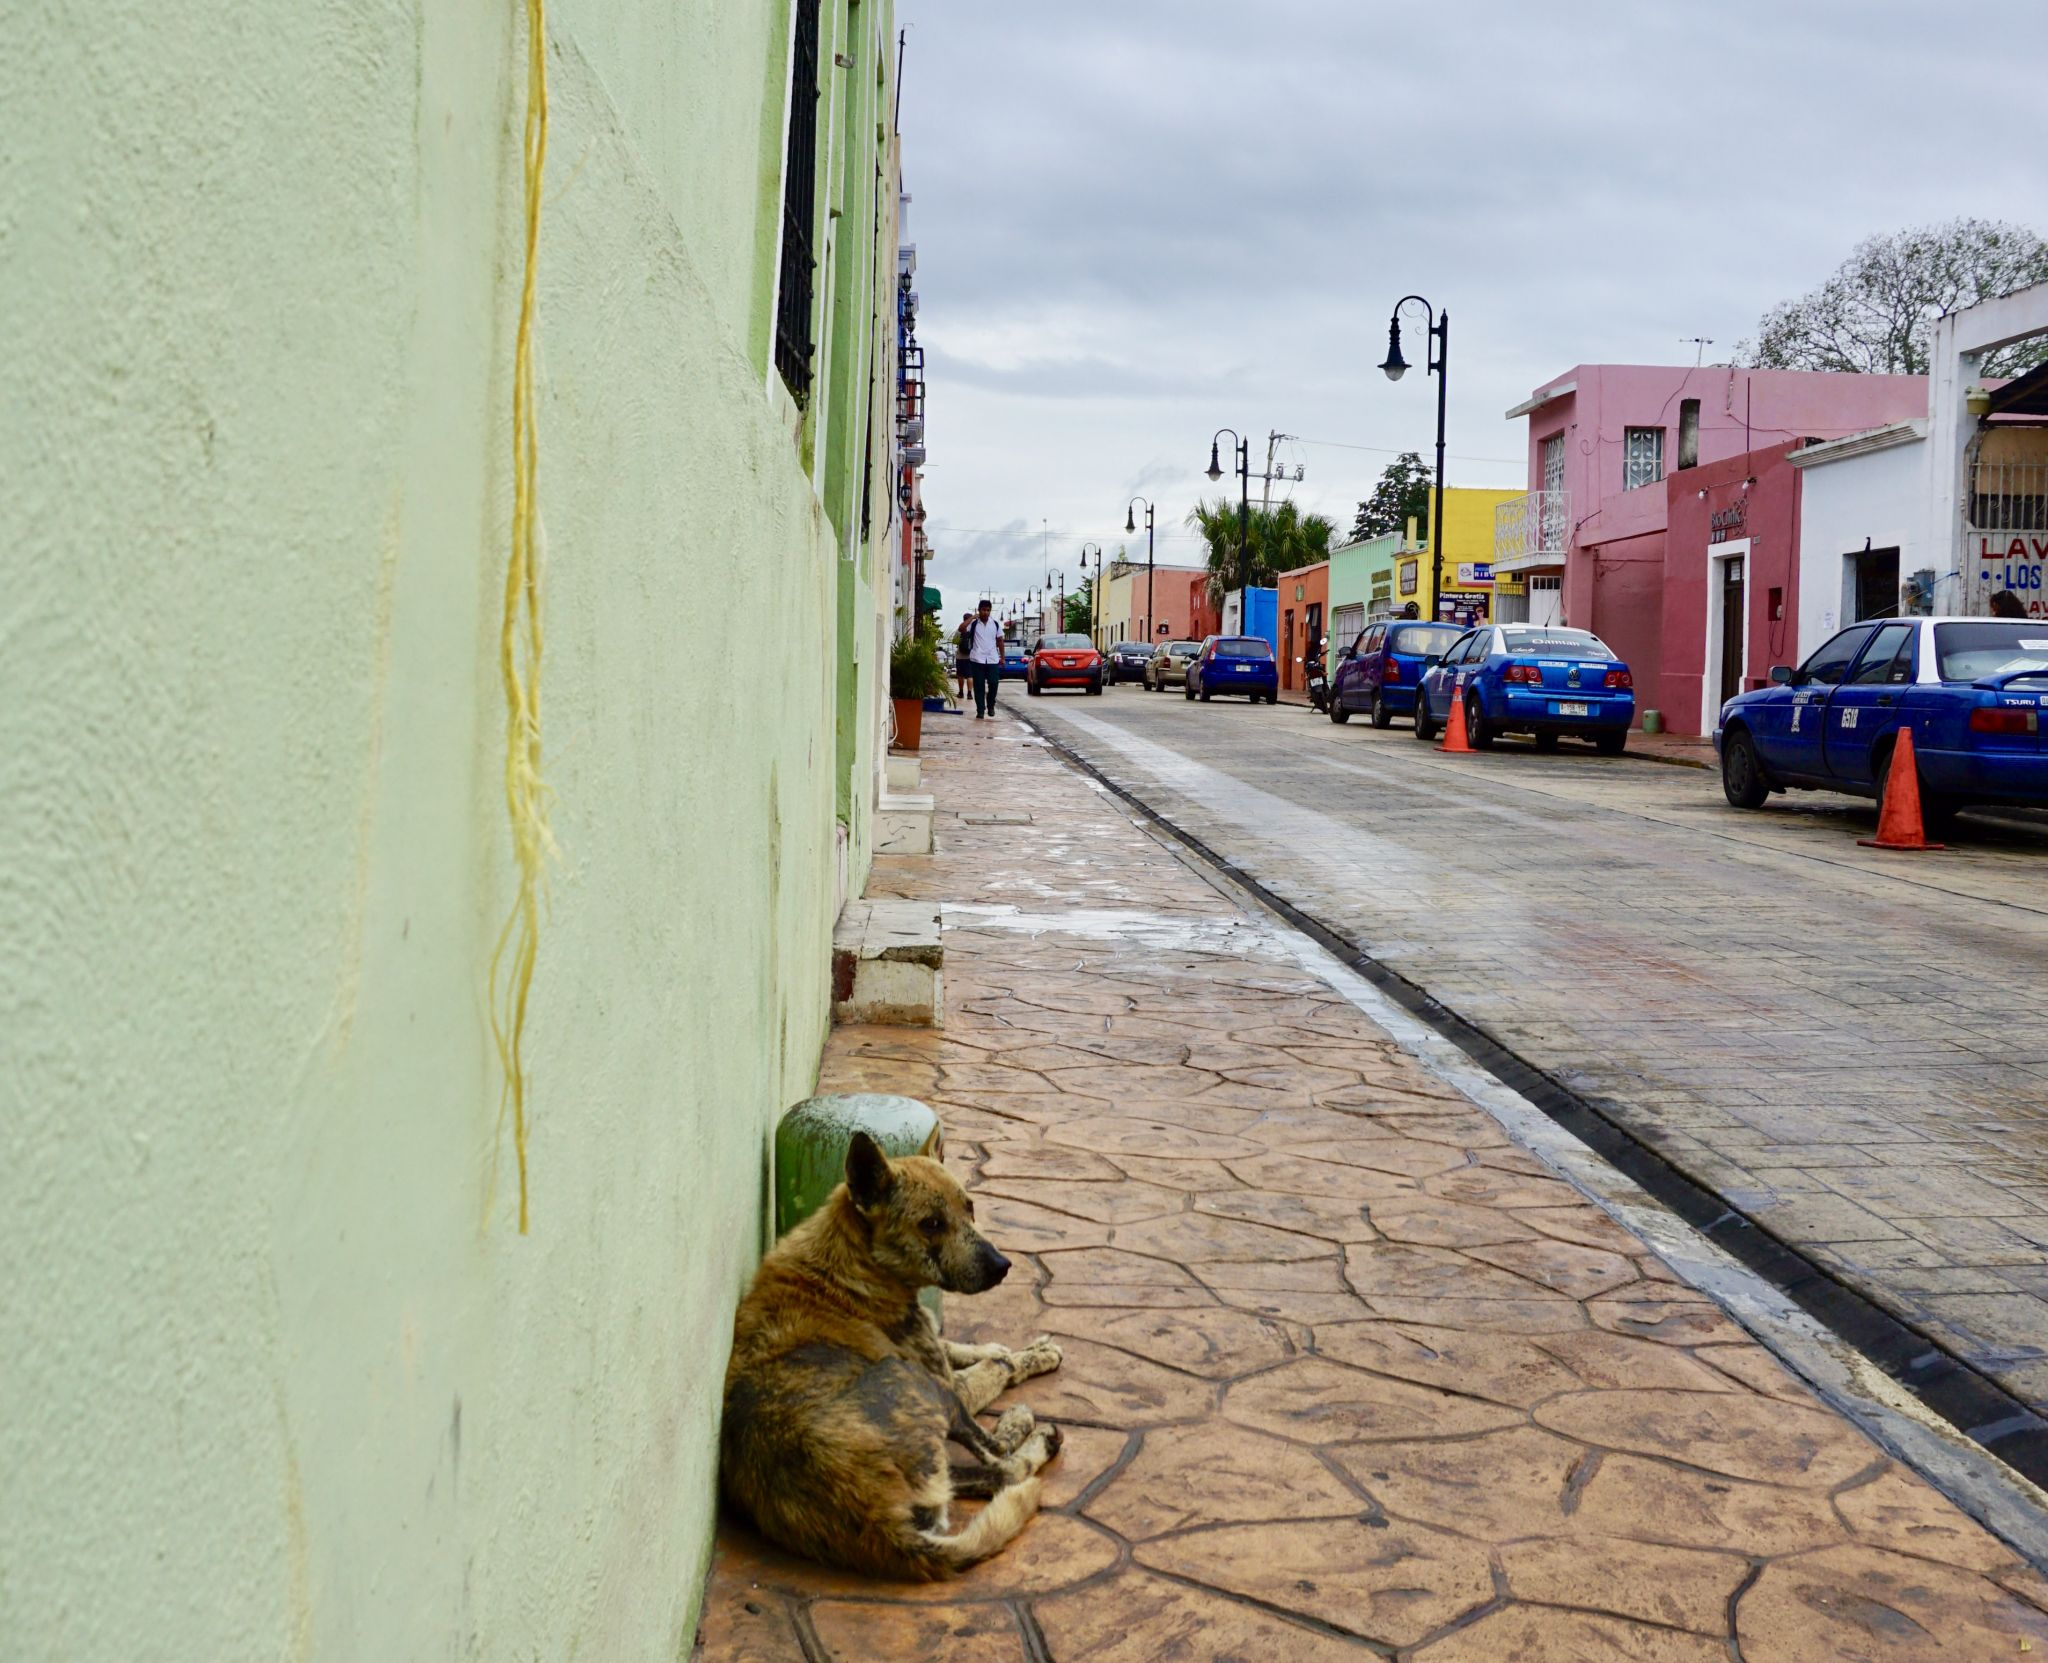 Wandering the streets of Valladolid in Mexico